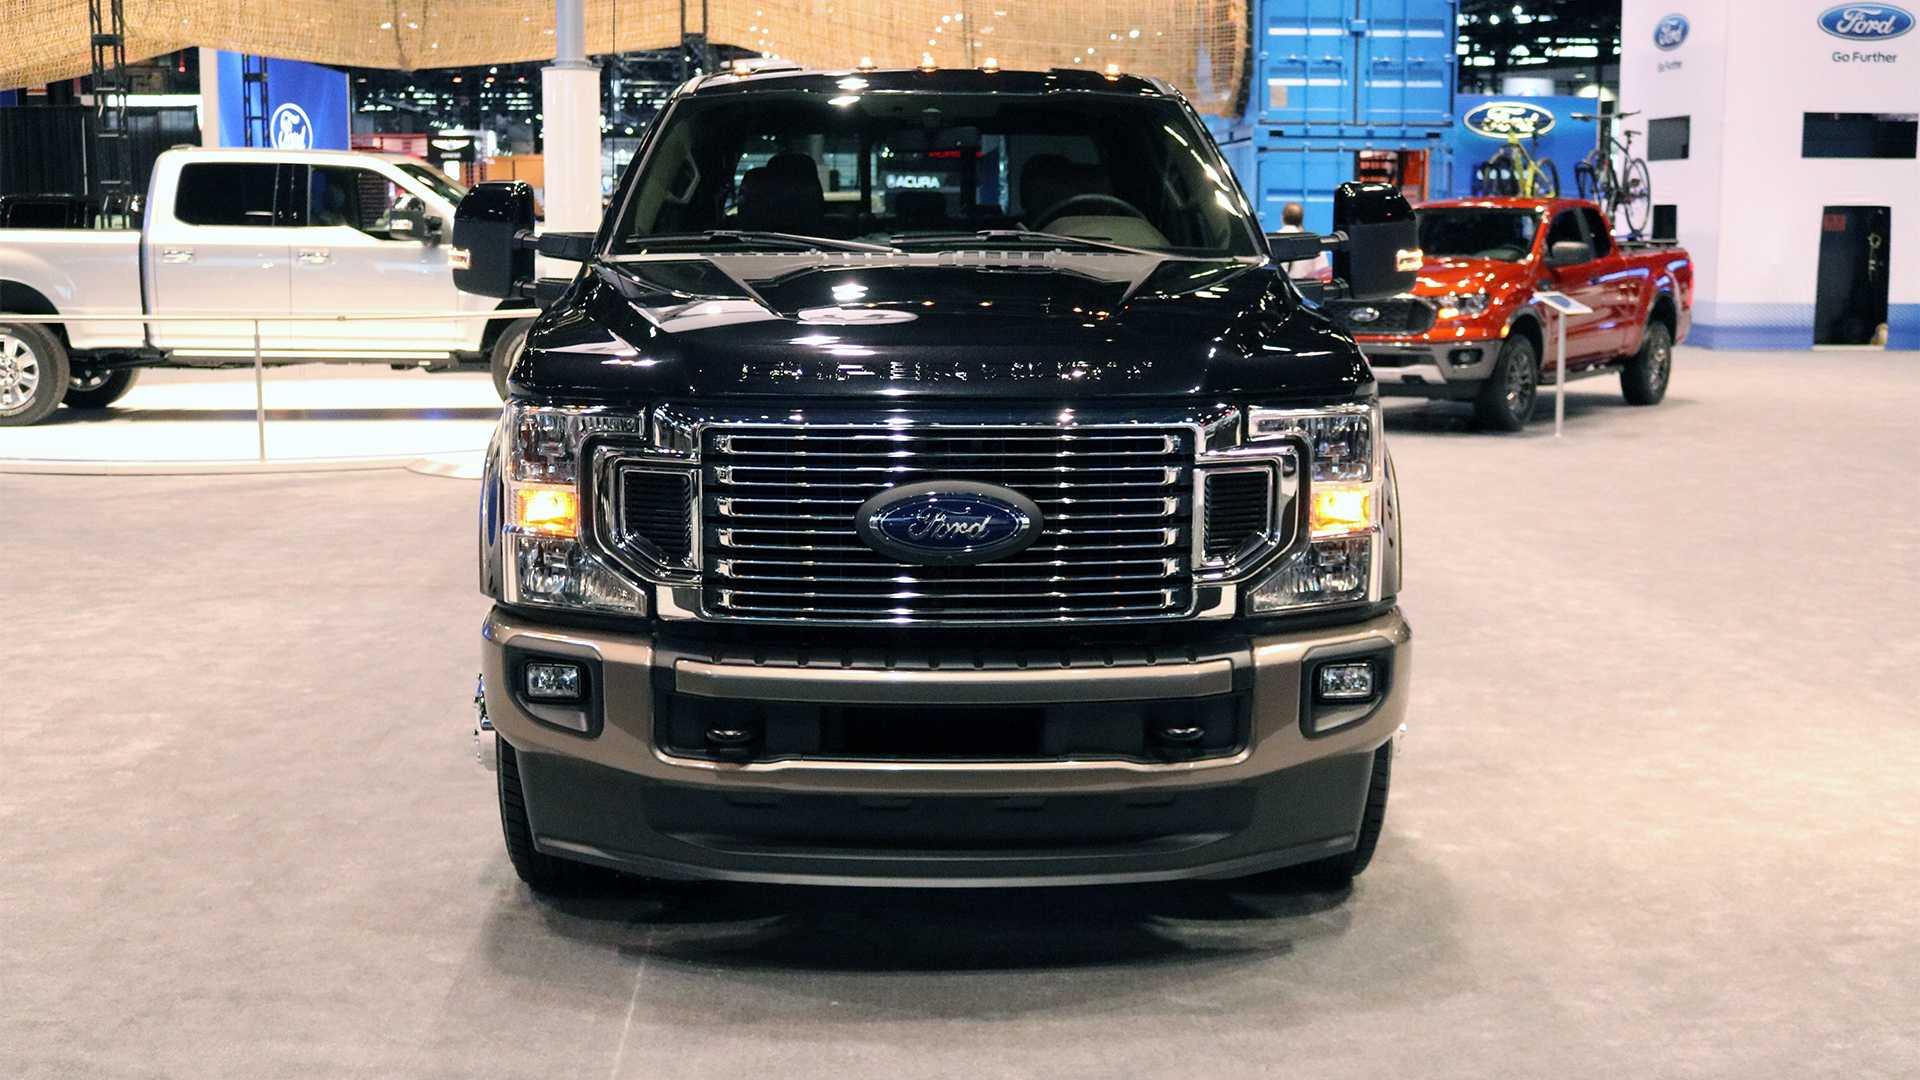 2020 Ford Super Duty Powers Into Chicago With 7 3 Liter V8